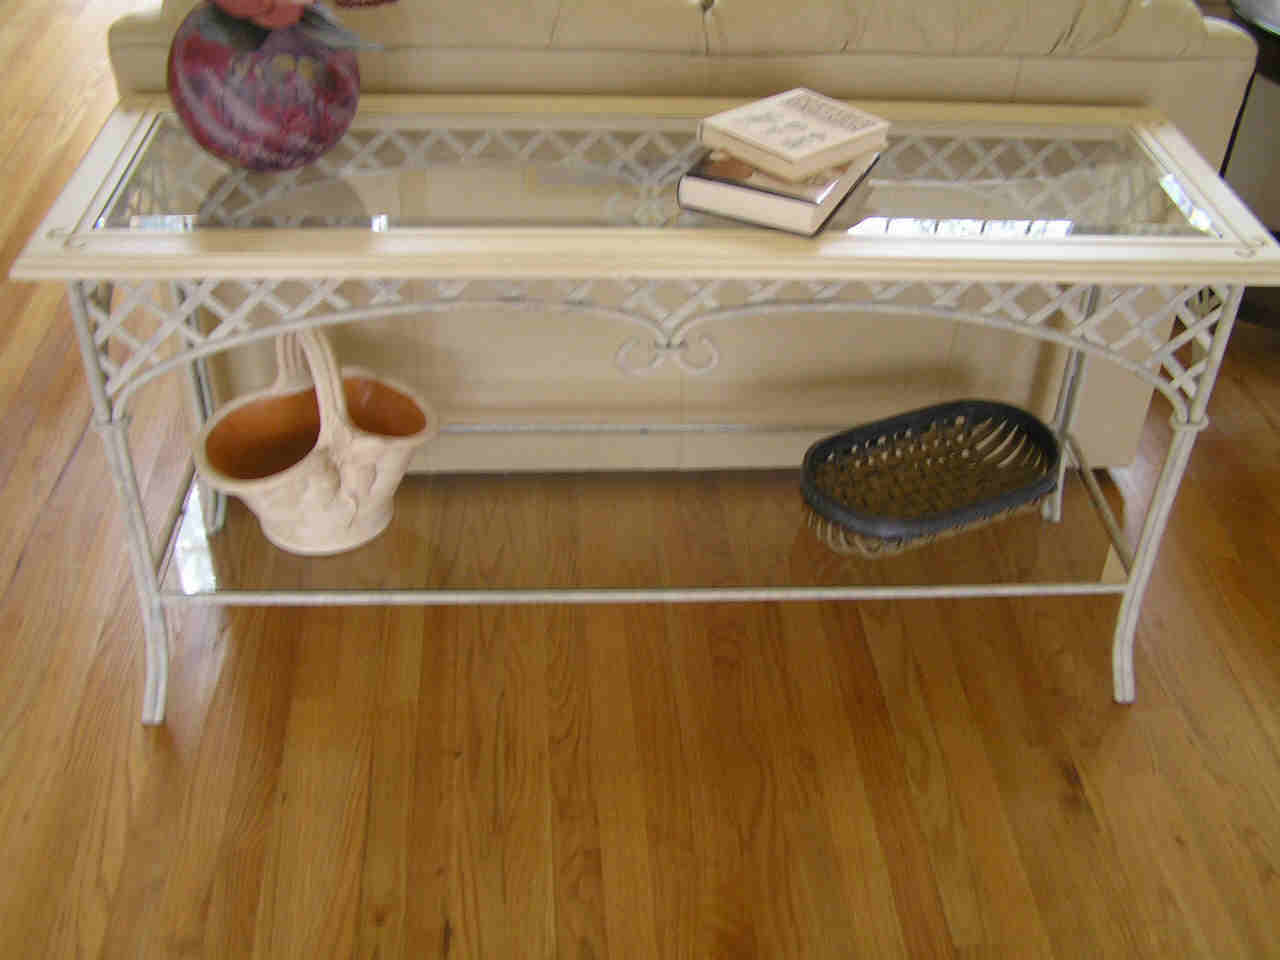 Vintage Wrought Iron Sofa Table With Glass Top Table Plus Shelf Beneath The  Table And Laminate